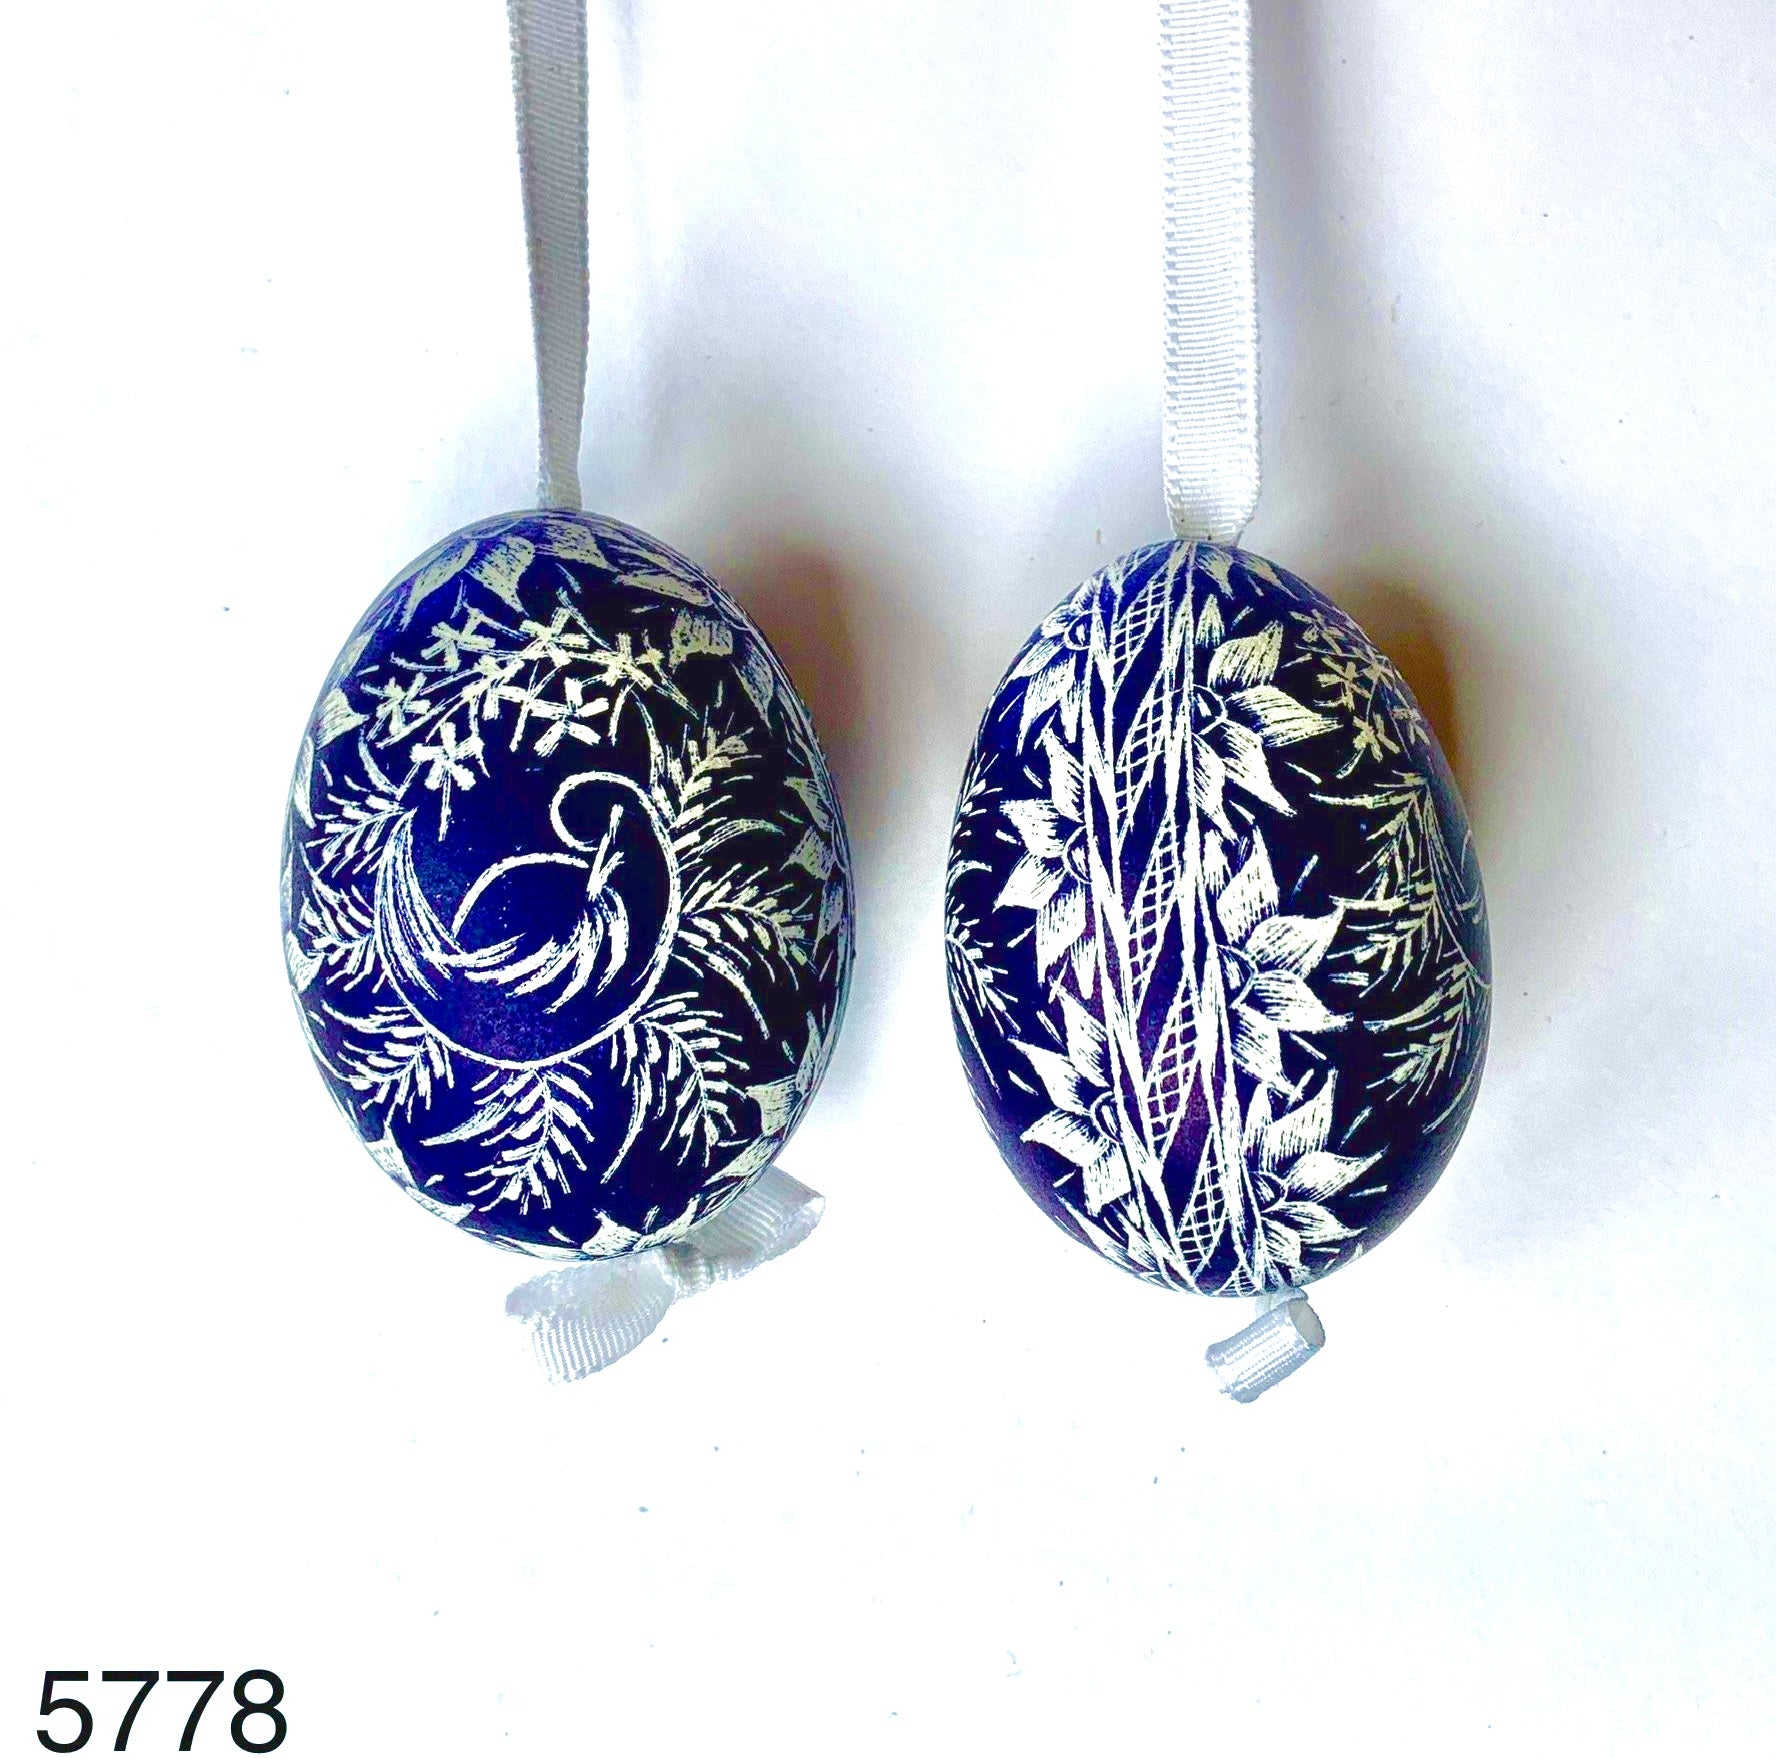 Peter's Hand Painted Egg from Austria 5778